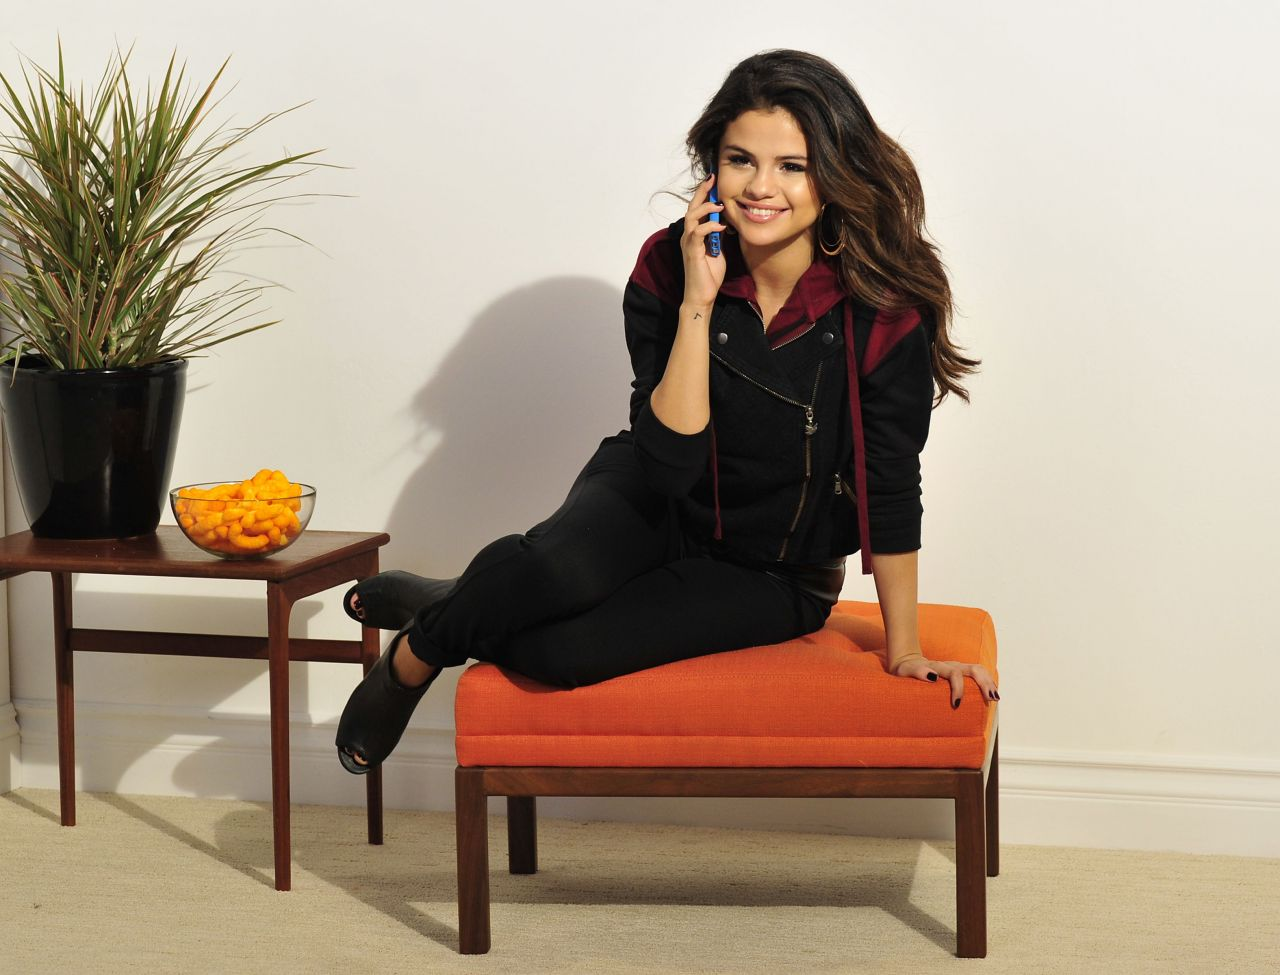 Selena Gomez Photoshoot For 'Dream Out Loud' Fall Campaign